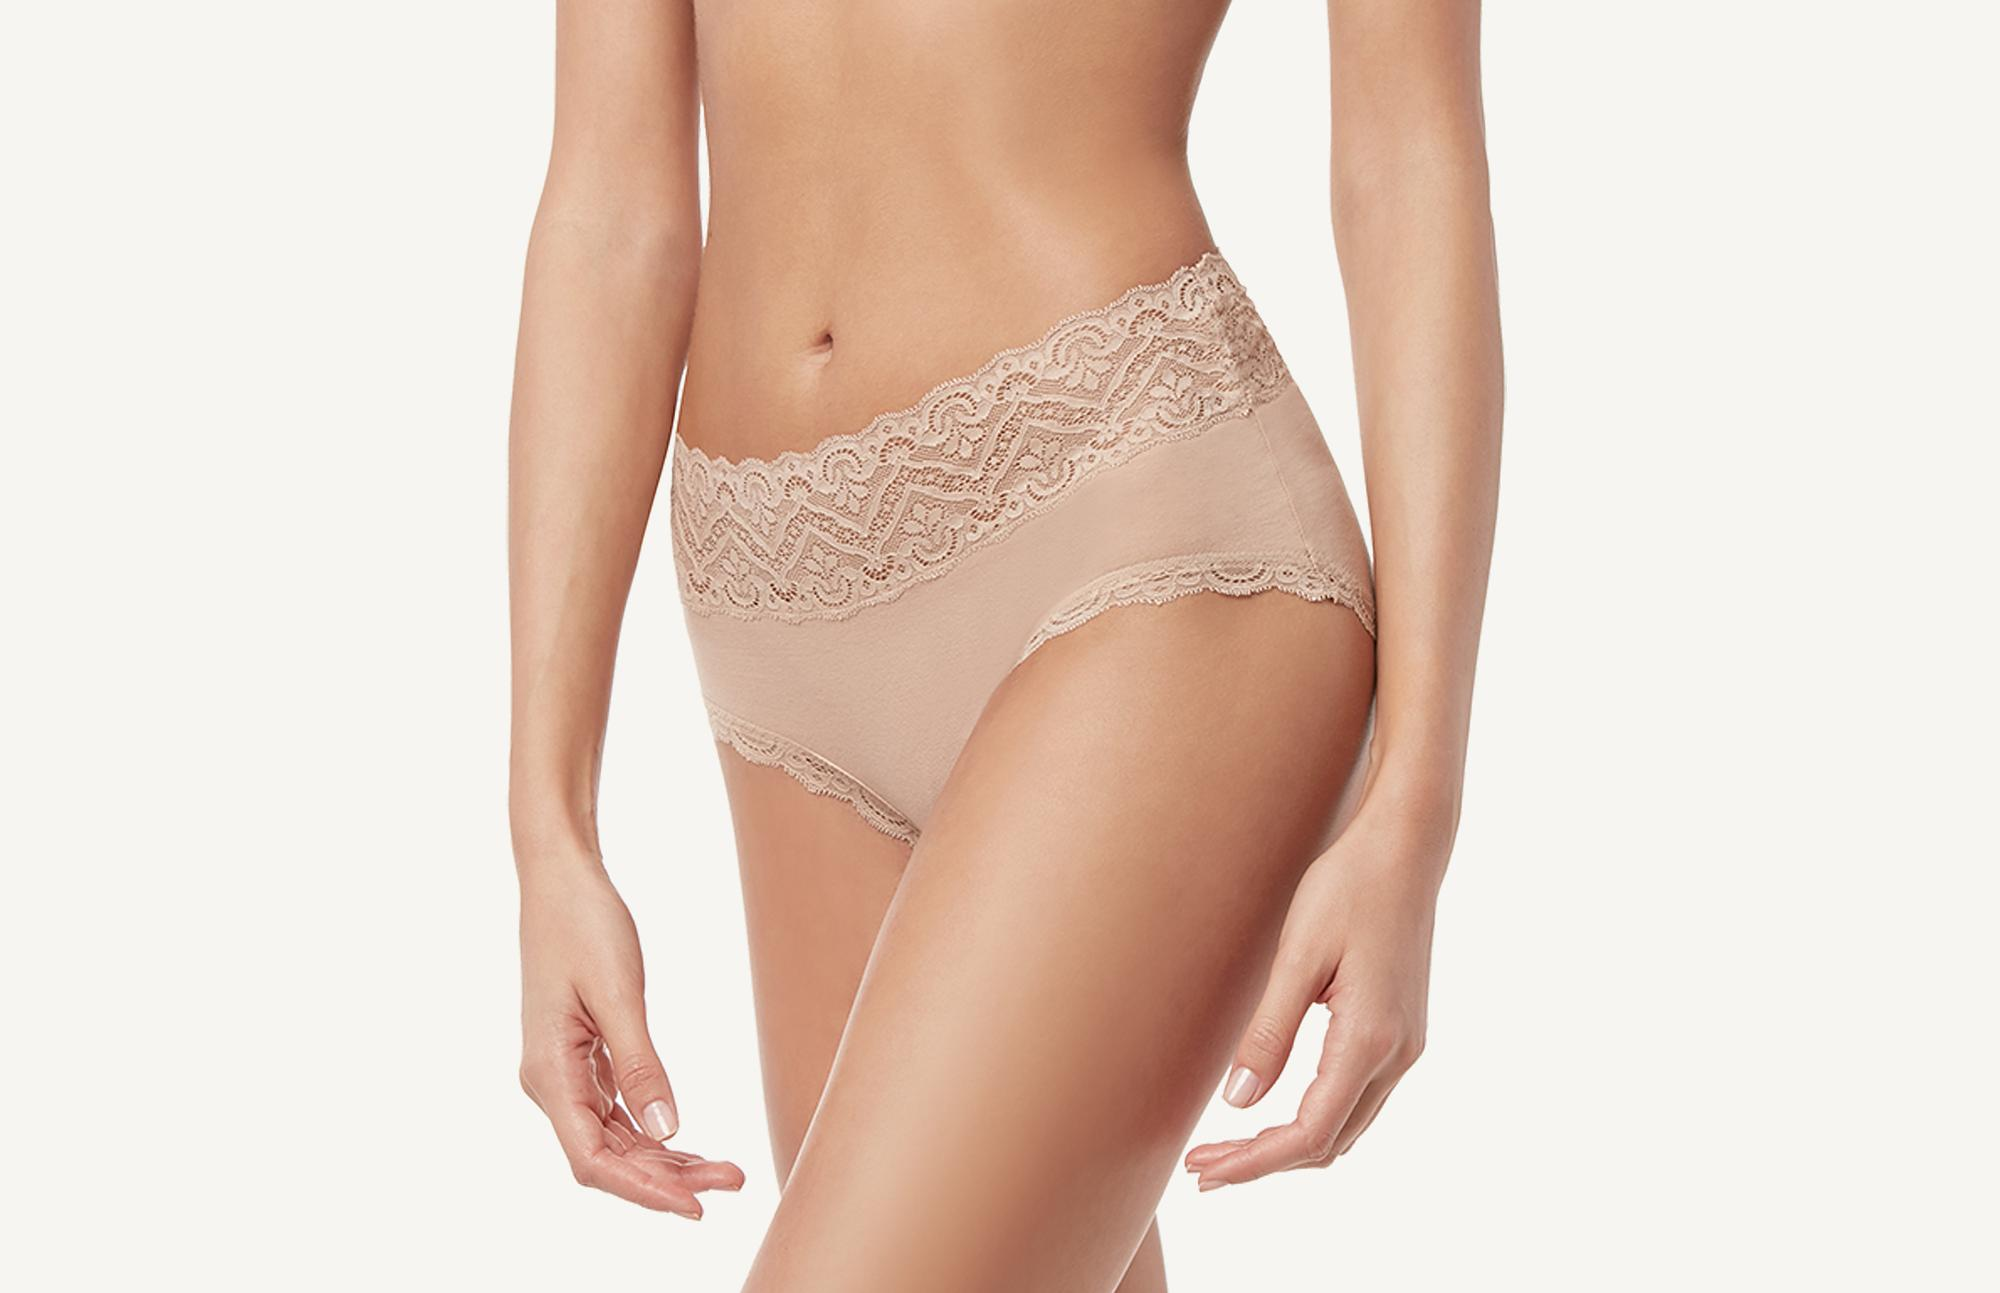 c2edf84b2e5e7 High-Waisted Cotton and Lycra Lace Panties - Intimissimi